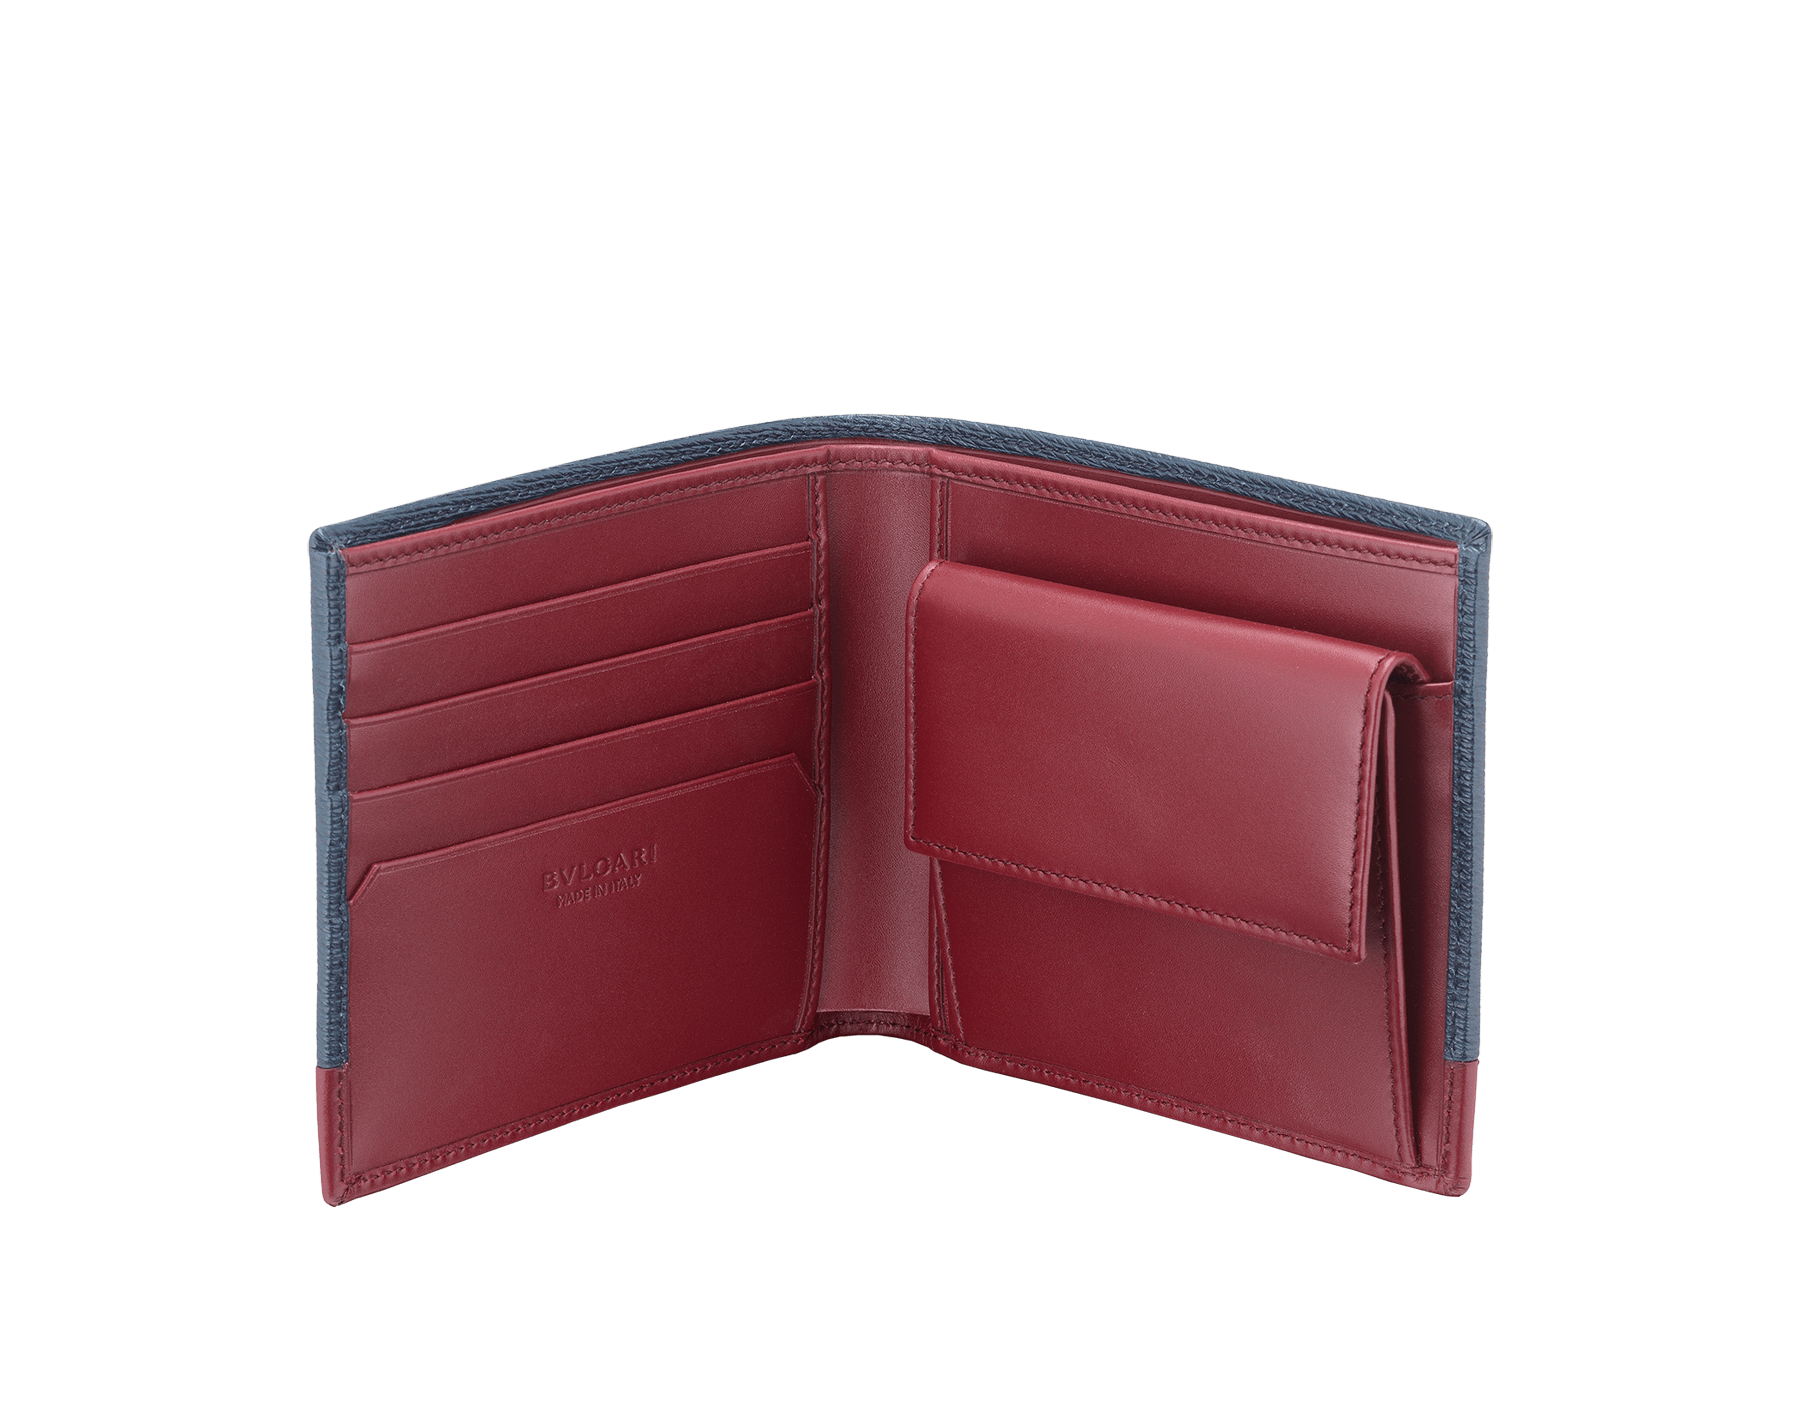 Serpenti Scaglie men's wallet in denim sapphire grazed calf leather and roman garnet calf leather. Bvlgari logo engraved on the hexagonal scaglie metal plate finished in dark ruthenium. 288457 image 2